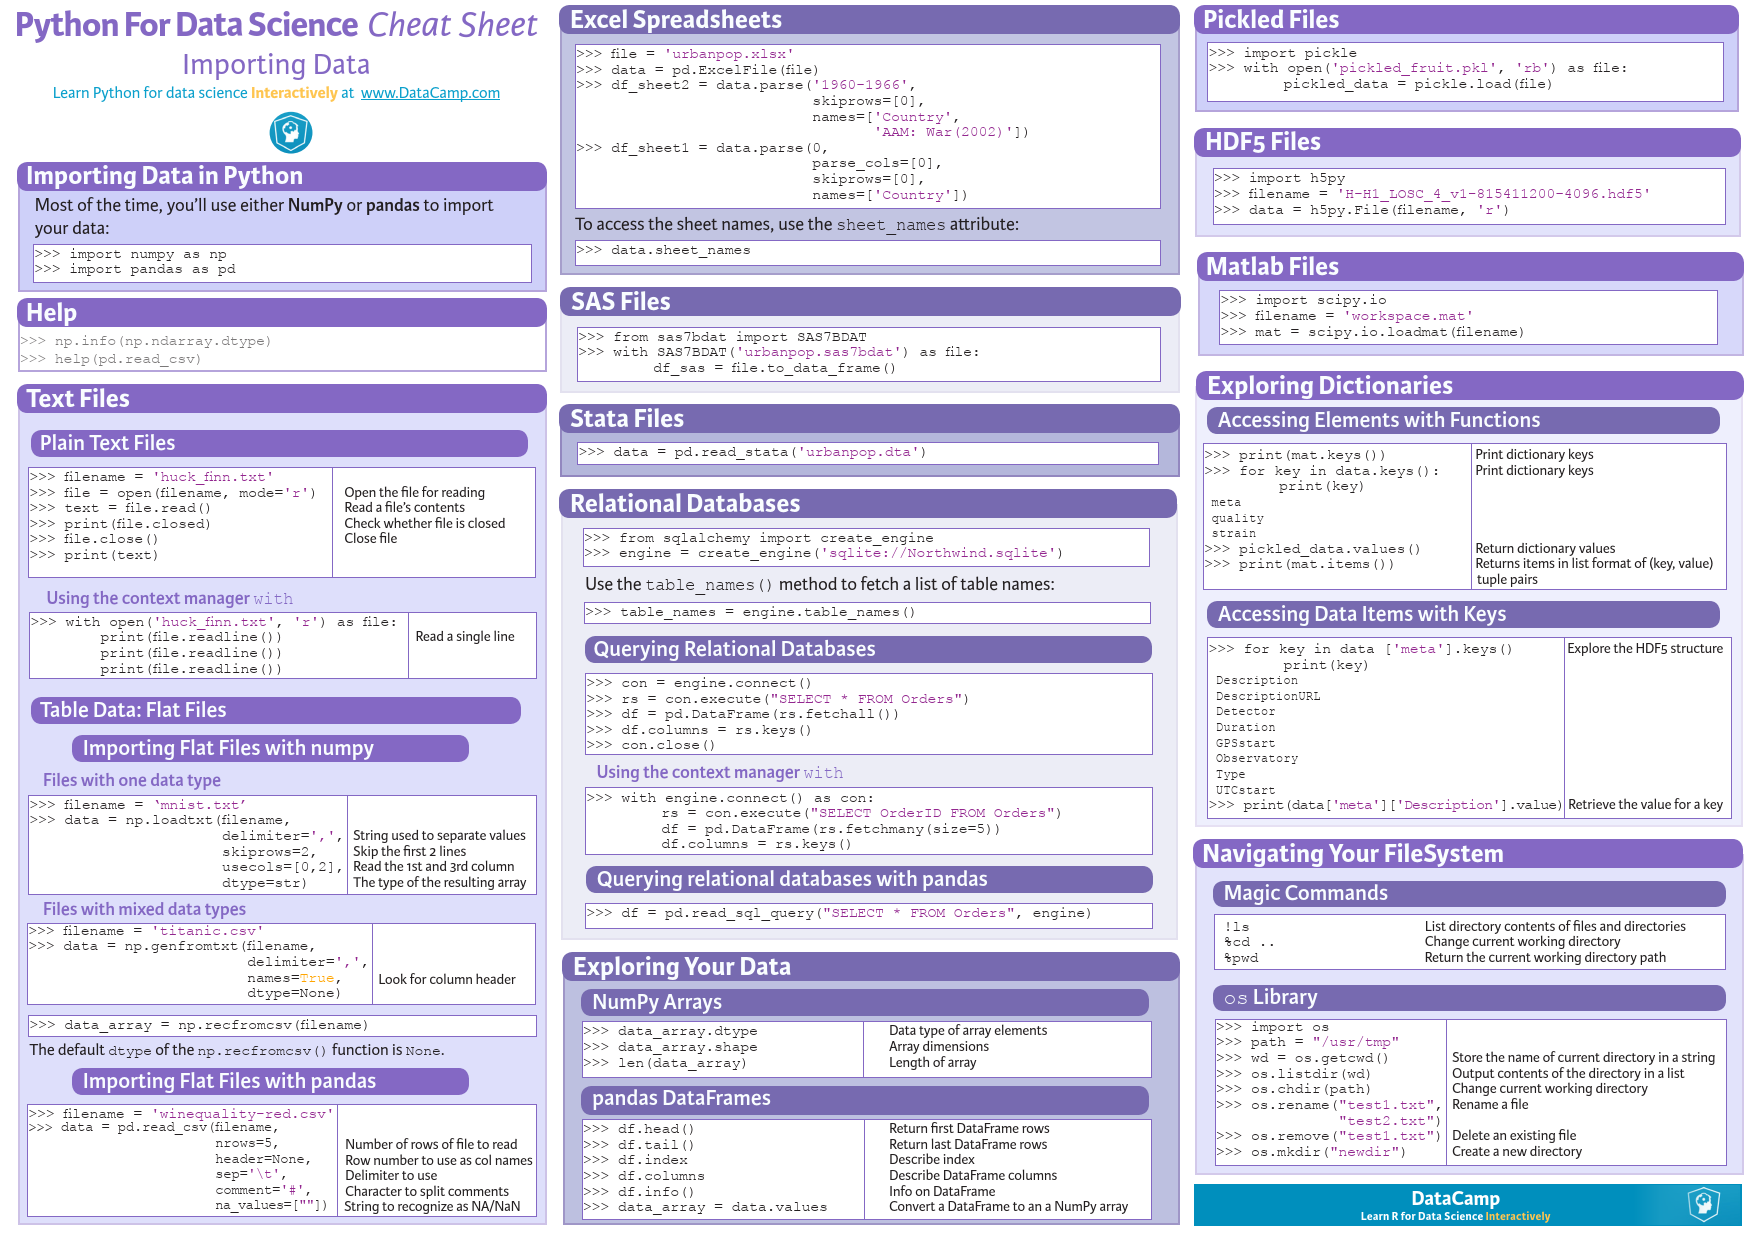 Importing Data - Python for Data Science [Cheat Sheet